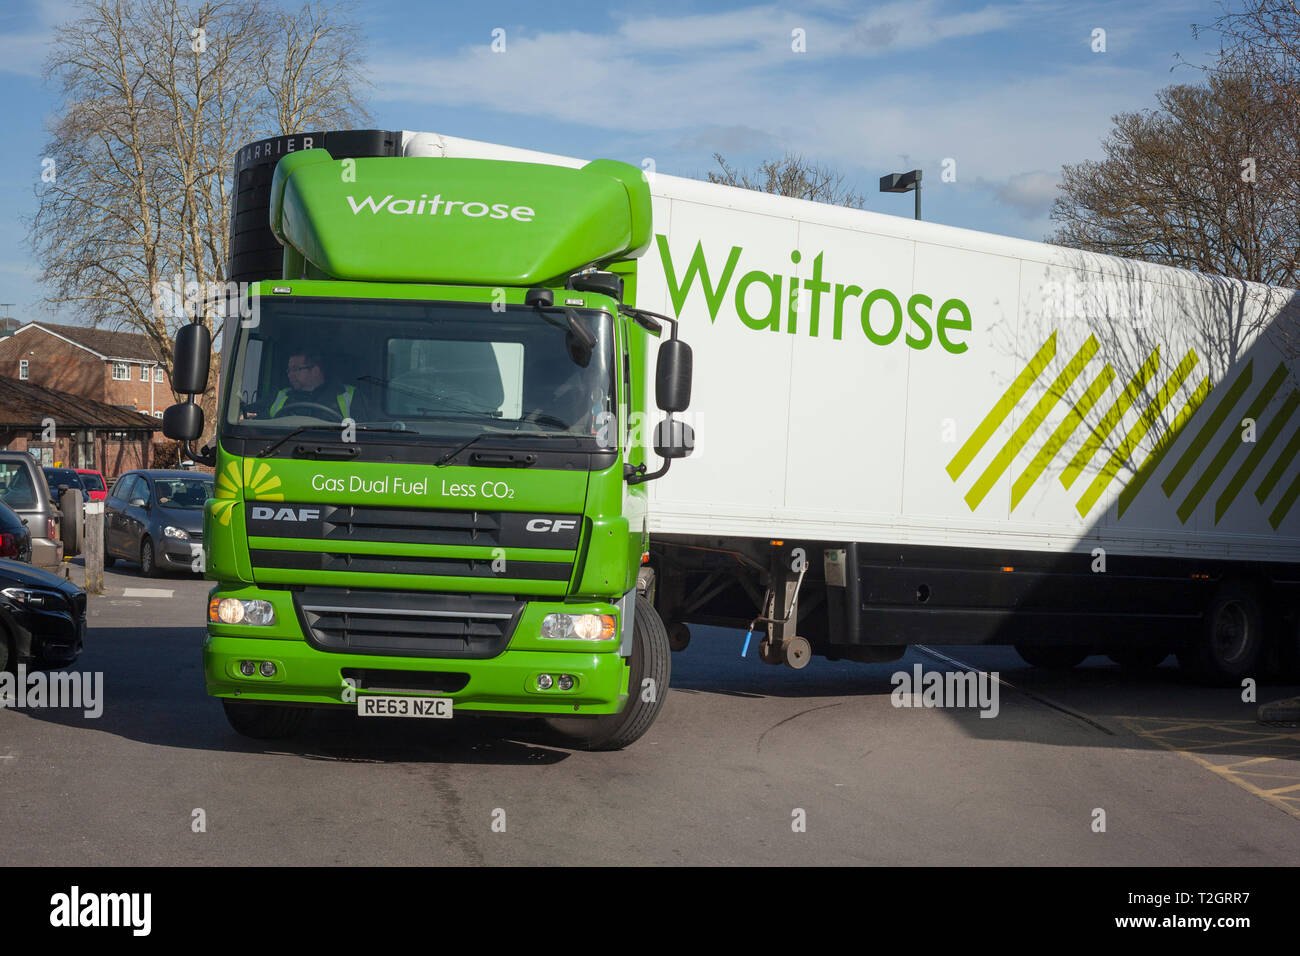 An energy efficient Gas Dual Fuel Waitrose lorry makes a delivery at the Henley-on-Thames branch with the slogan 'Less CO2' - Stock Image